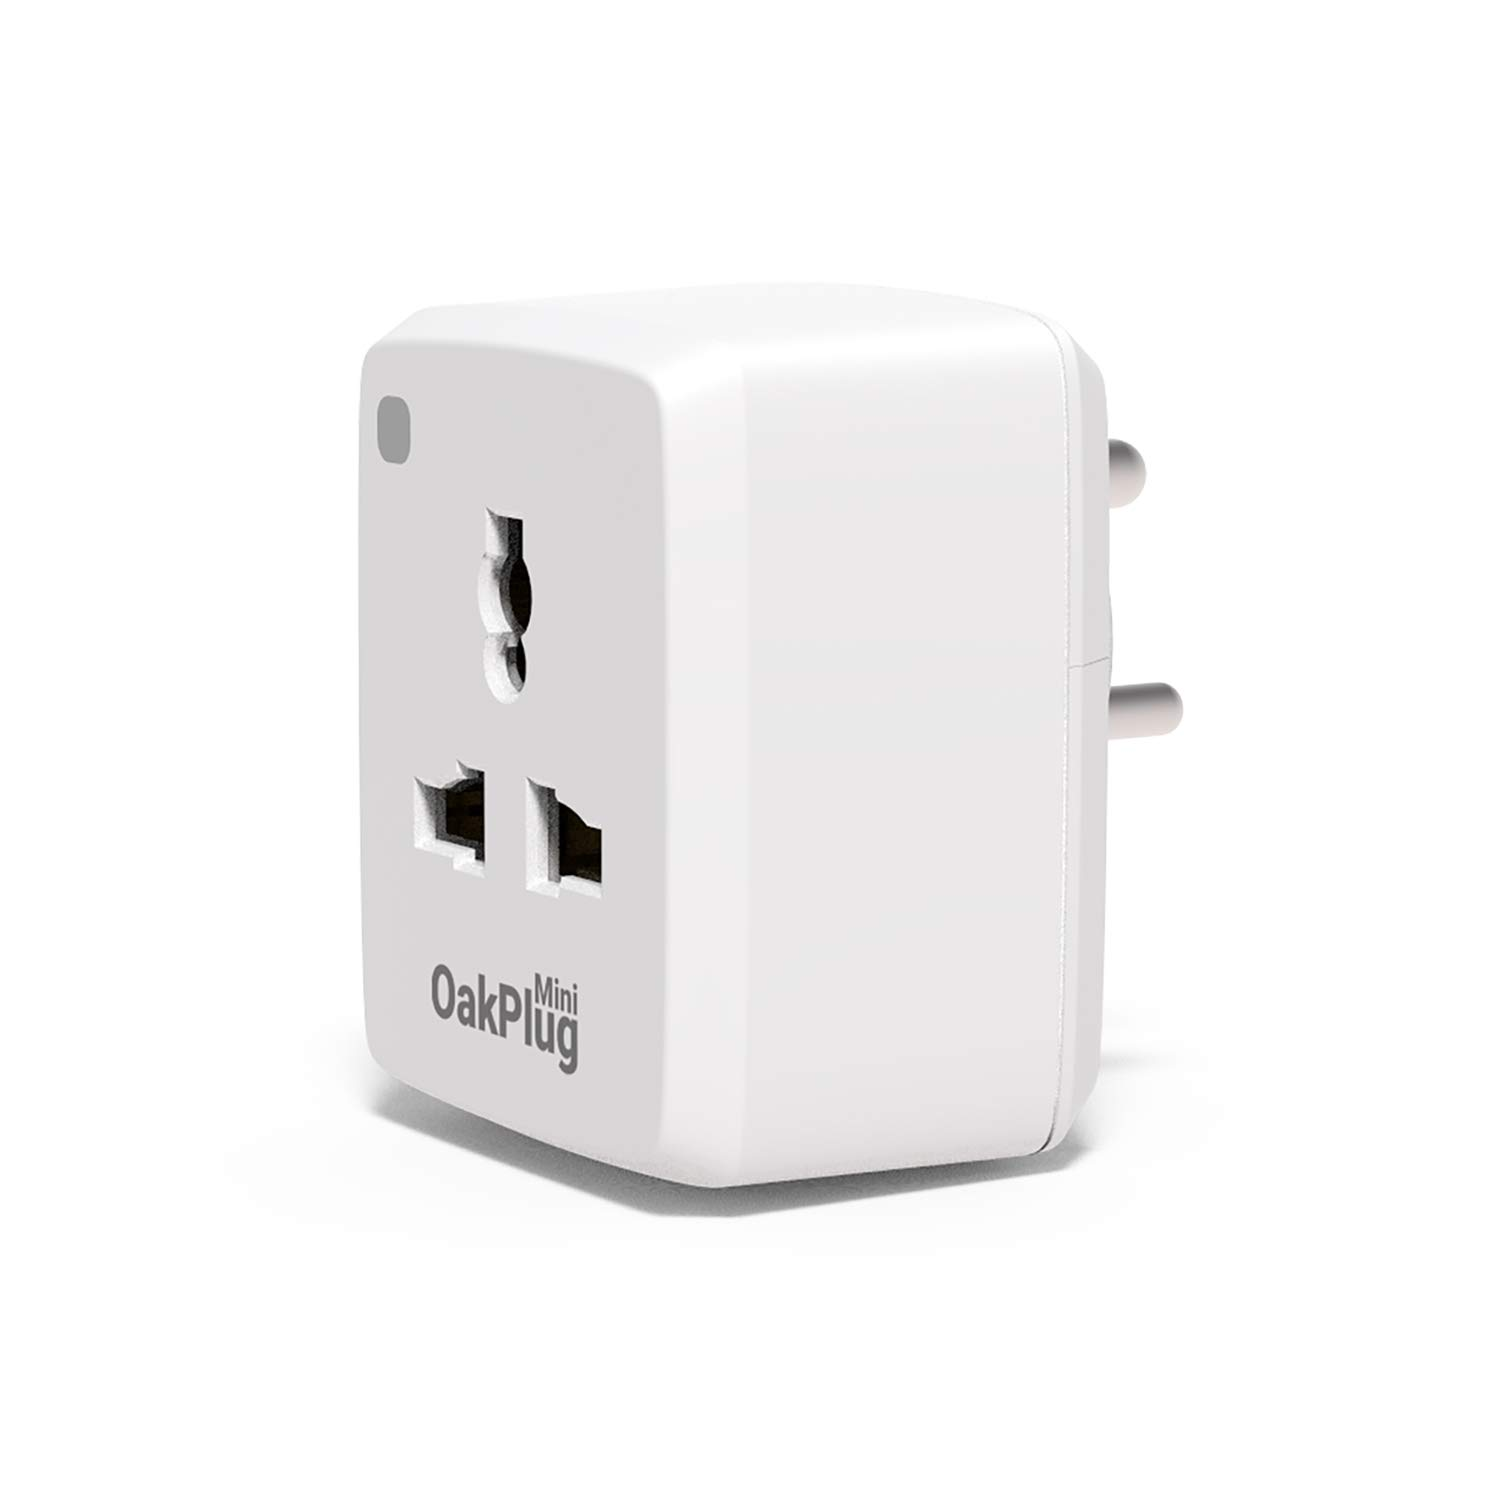 Oakter 6 Amp WiFi Smart Plug (No Hub Required)